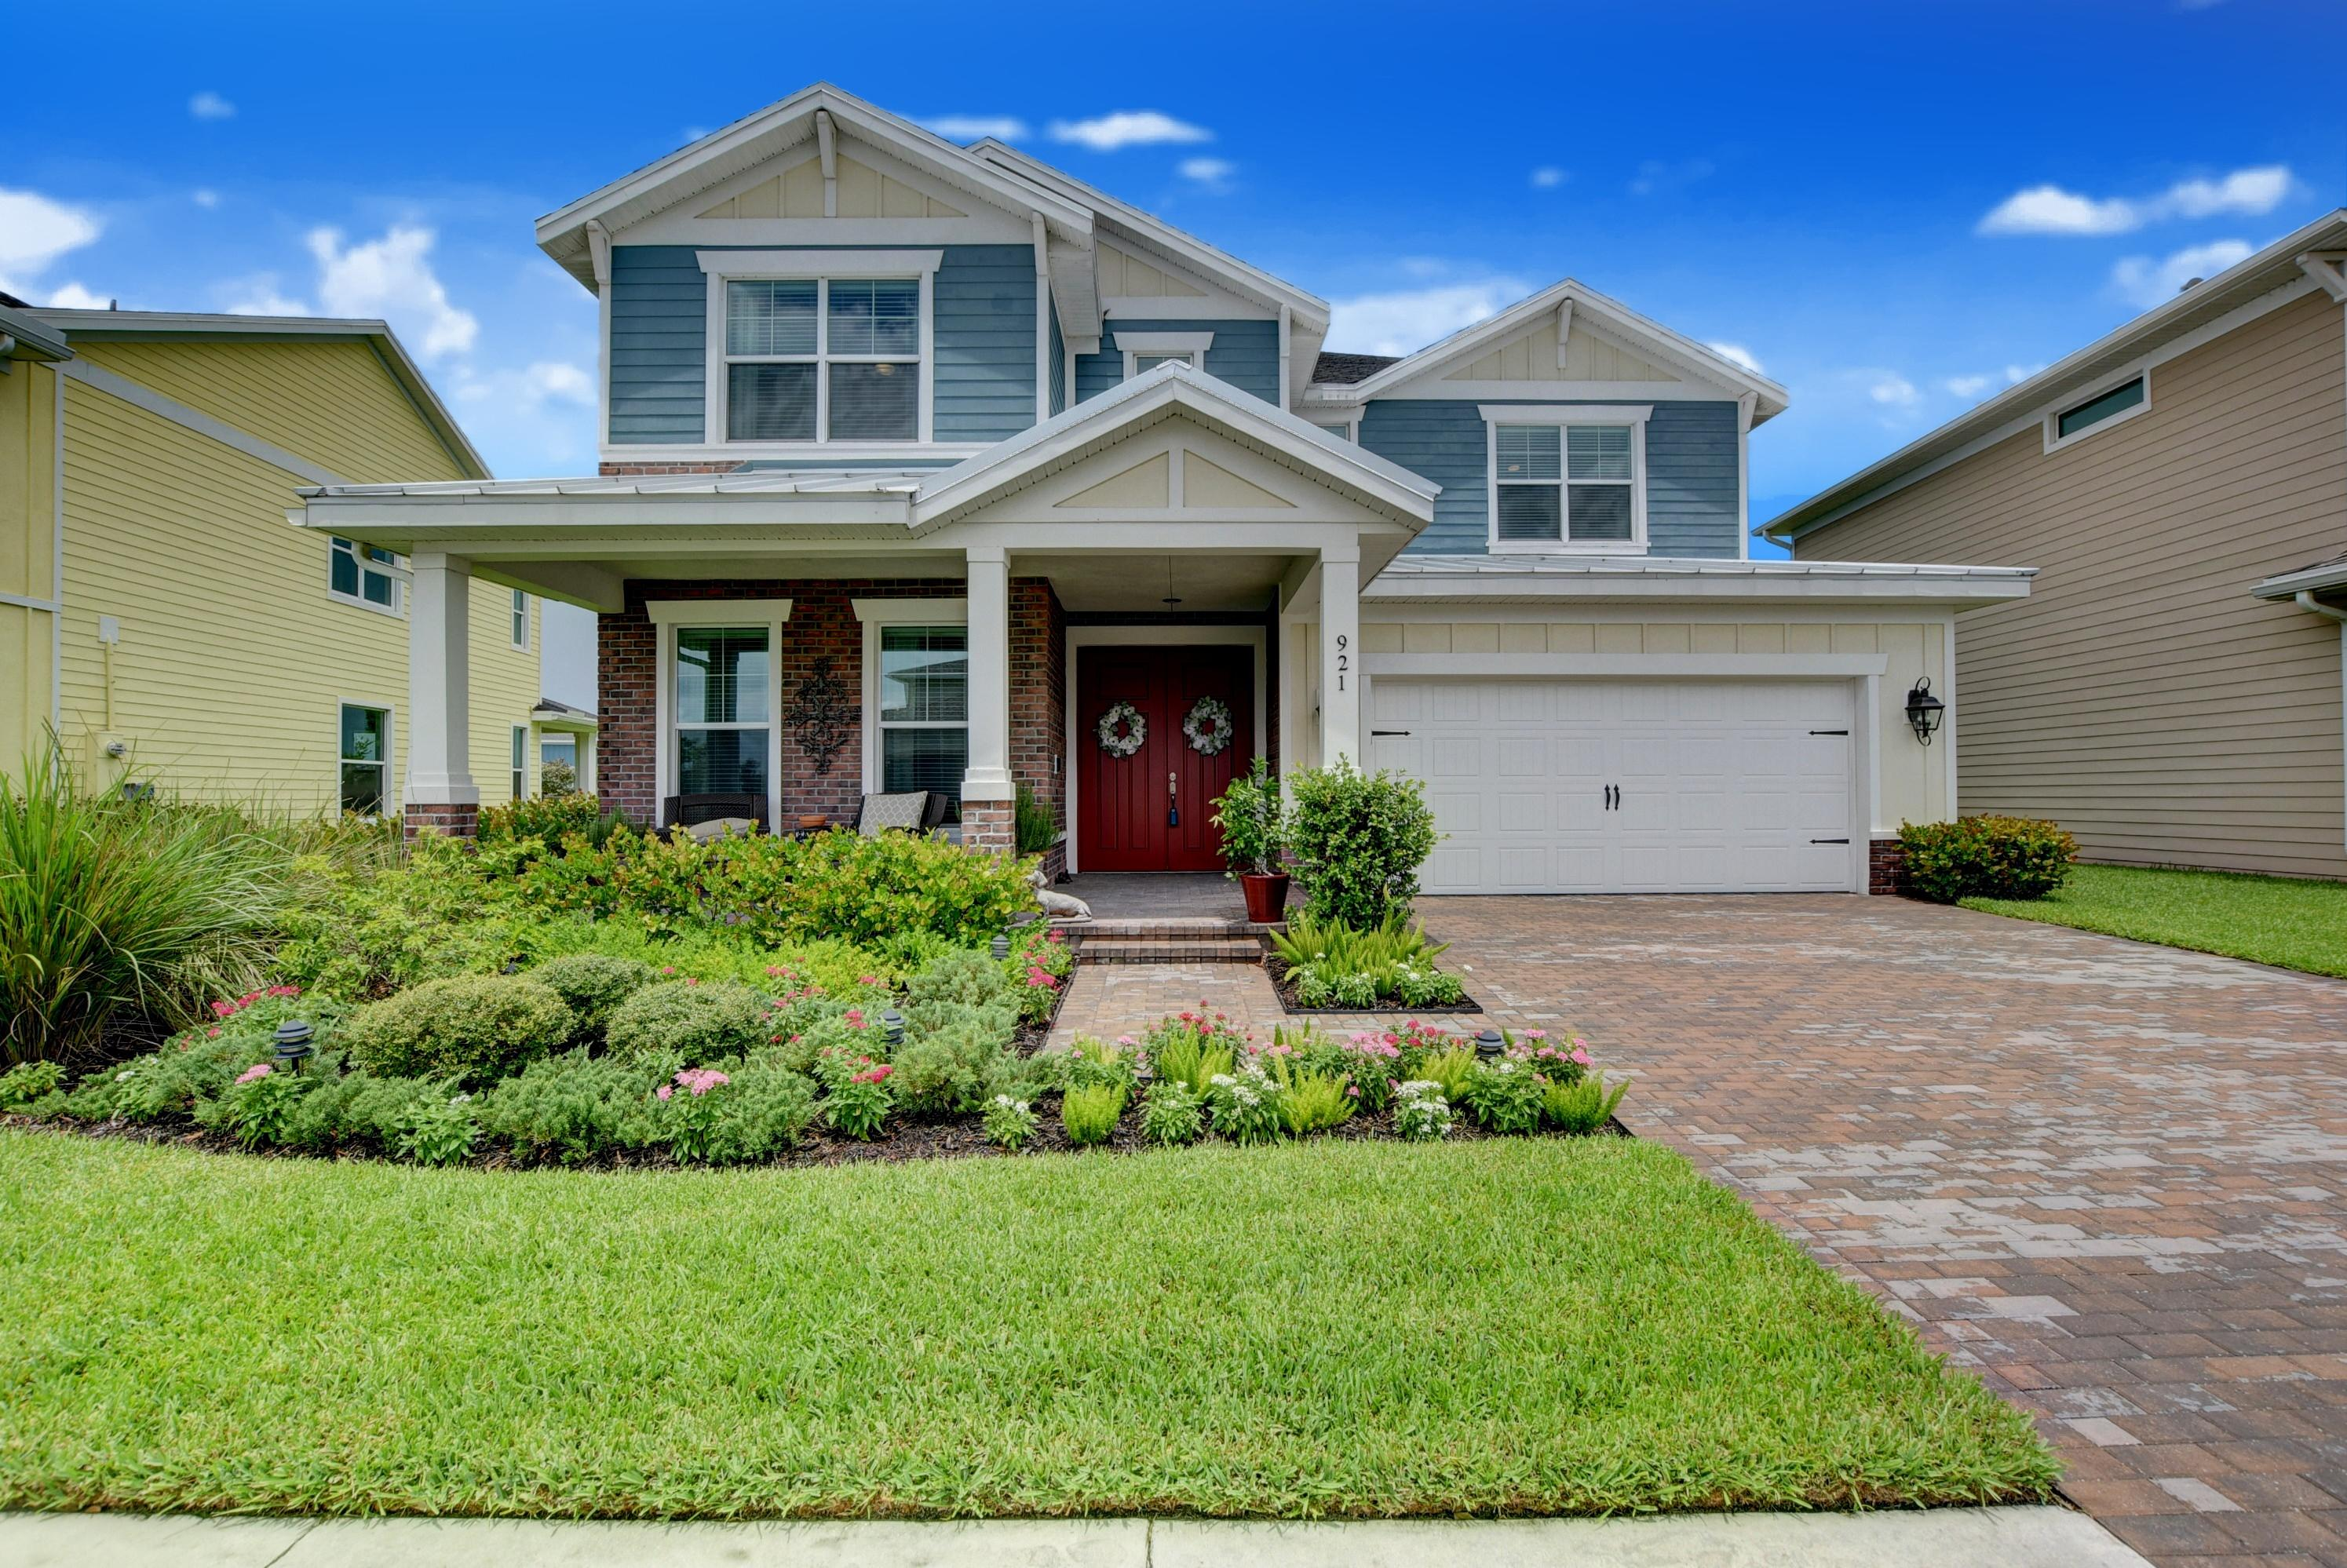 921 Sterling Pine Place - Loxahatchee, Florida